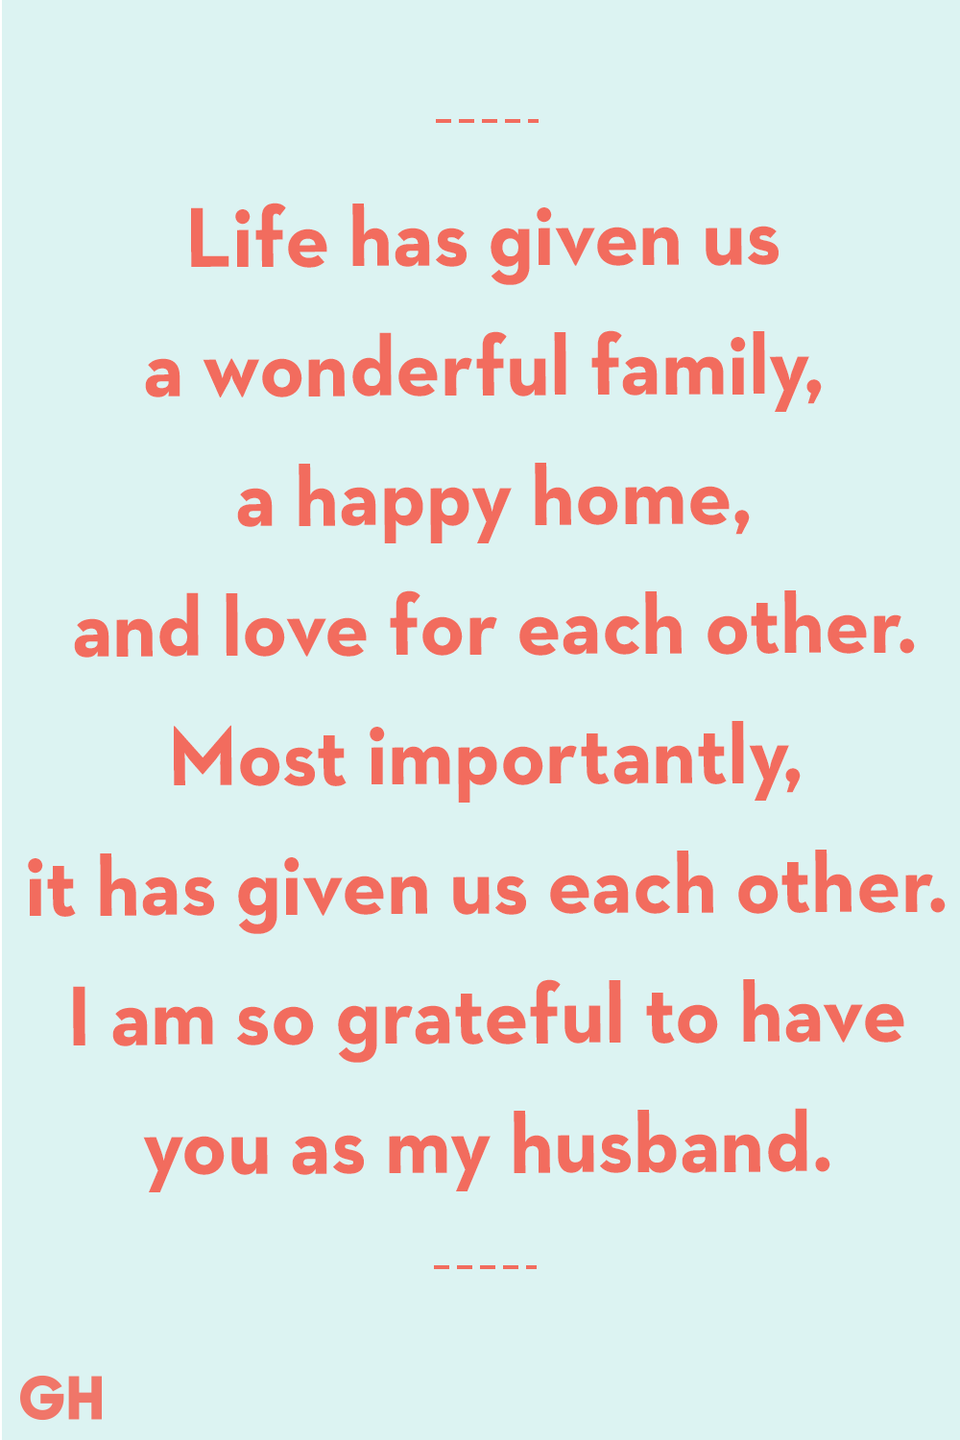 <p>Life has given us a wonderful family, a happy home, and love for each other. Mostly importantly, it has given us each other. I am so grateful to have you as my husband.</p>